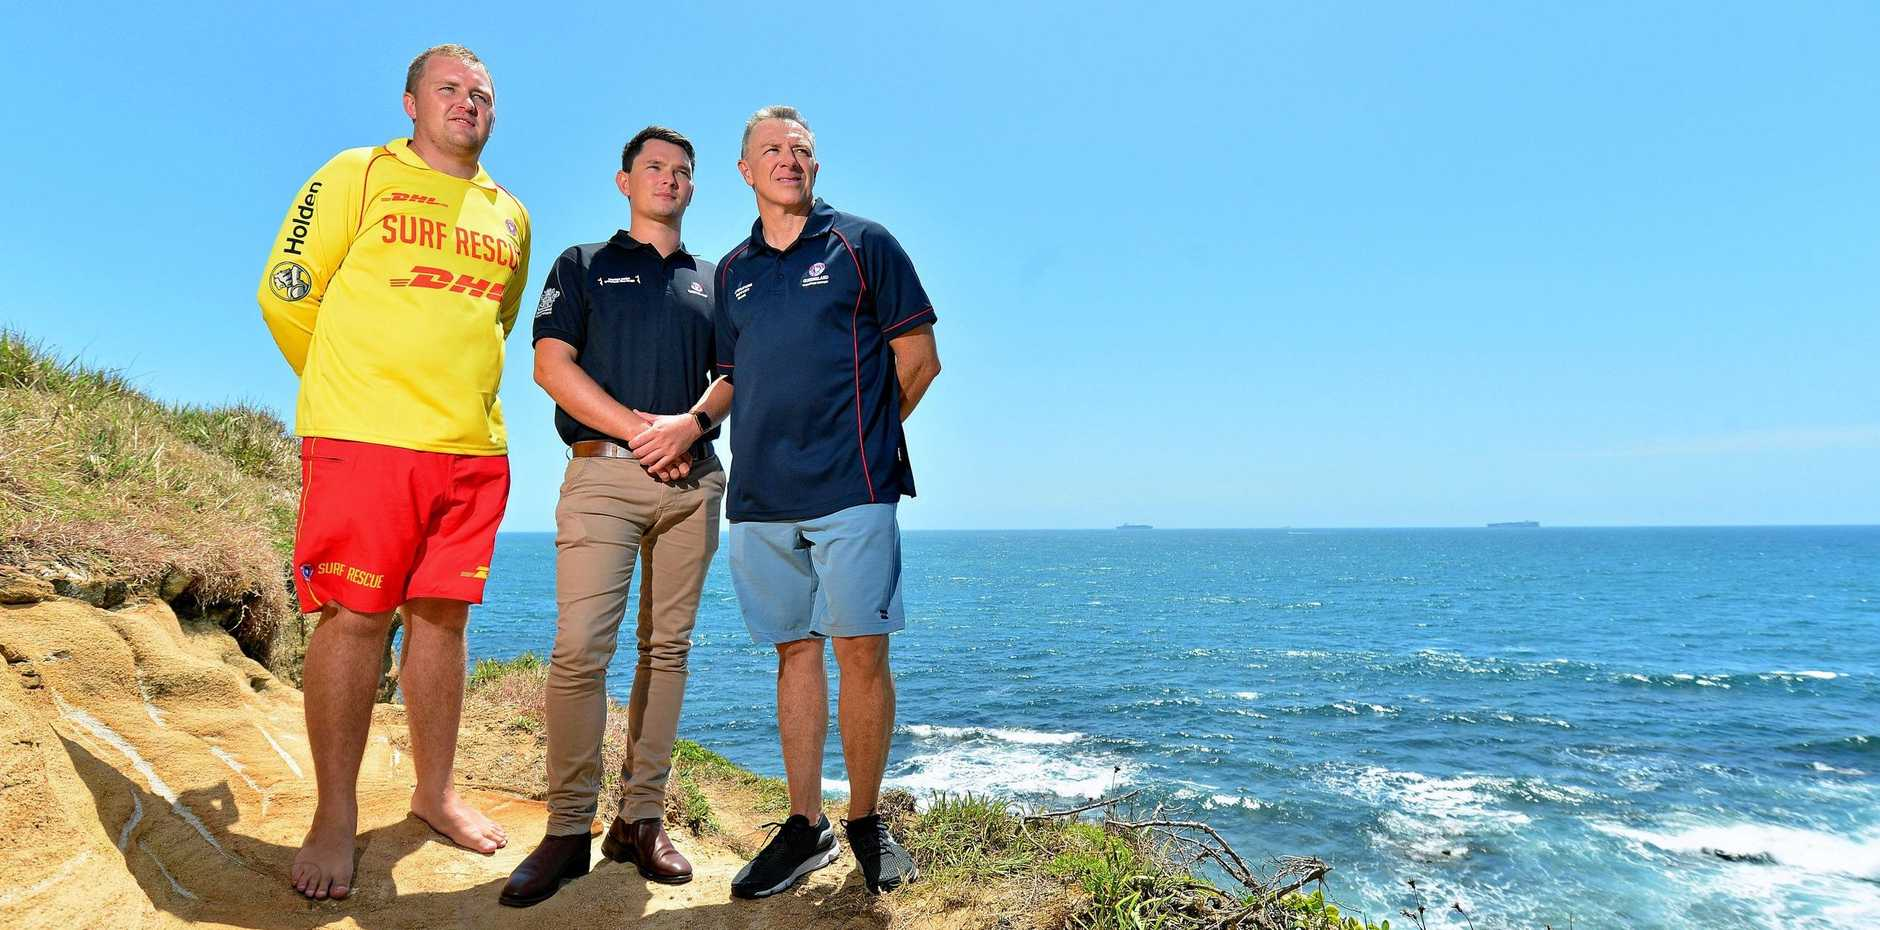 ACTION MEN: (L-R) Nathan Steer, Jacob Thomson and Graham Sharry were the first lifesavers to respond to reports Kyle Roberts' kayak had been attacked by a large tiger shark. Dave McLean joined the team, working as comms coordinator for the rescue.